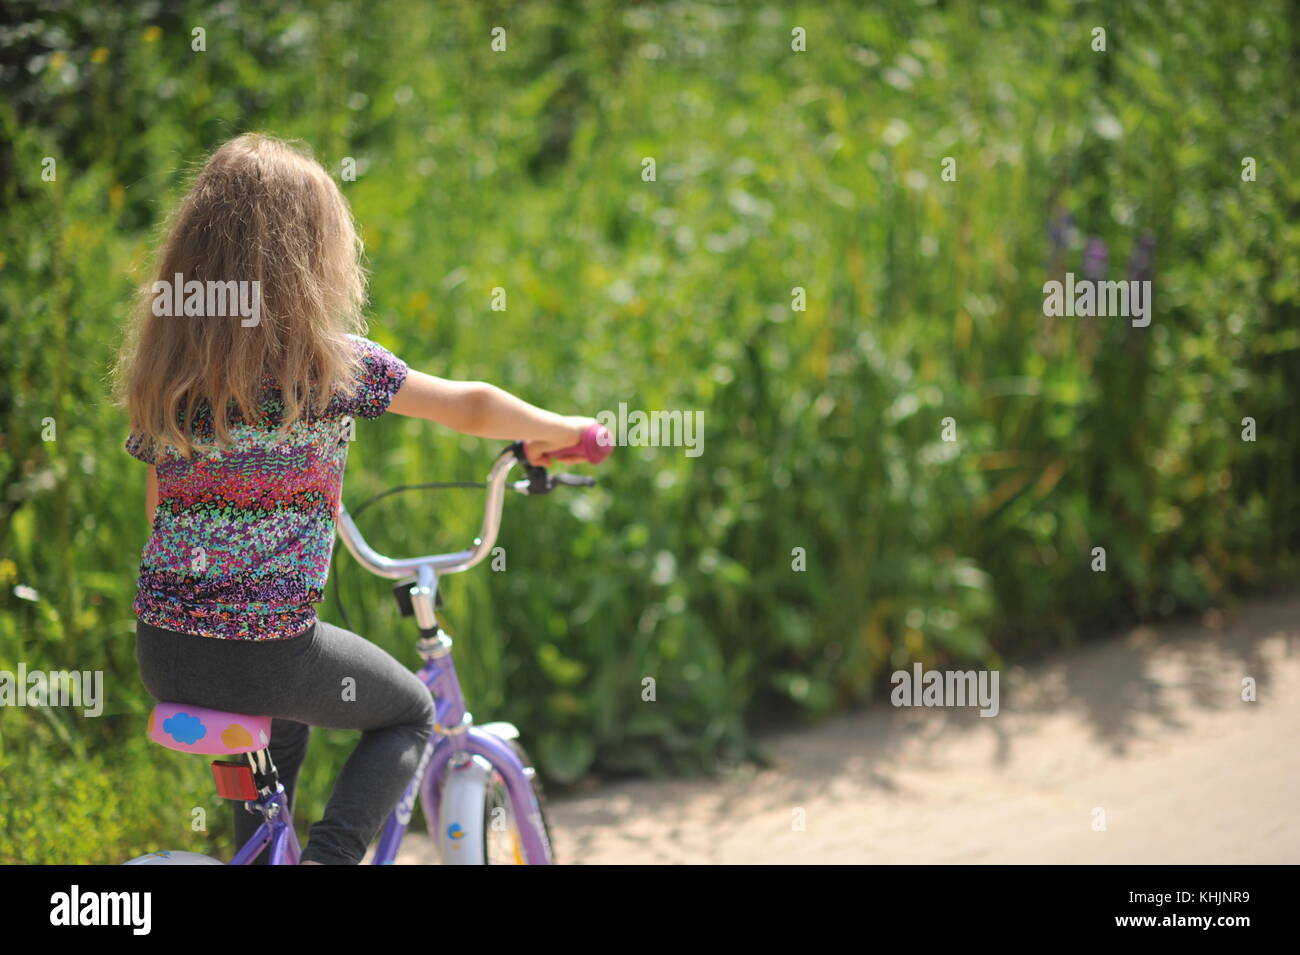 Girl rides velocipede on a country road. - Stock Image